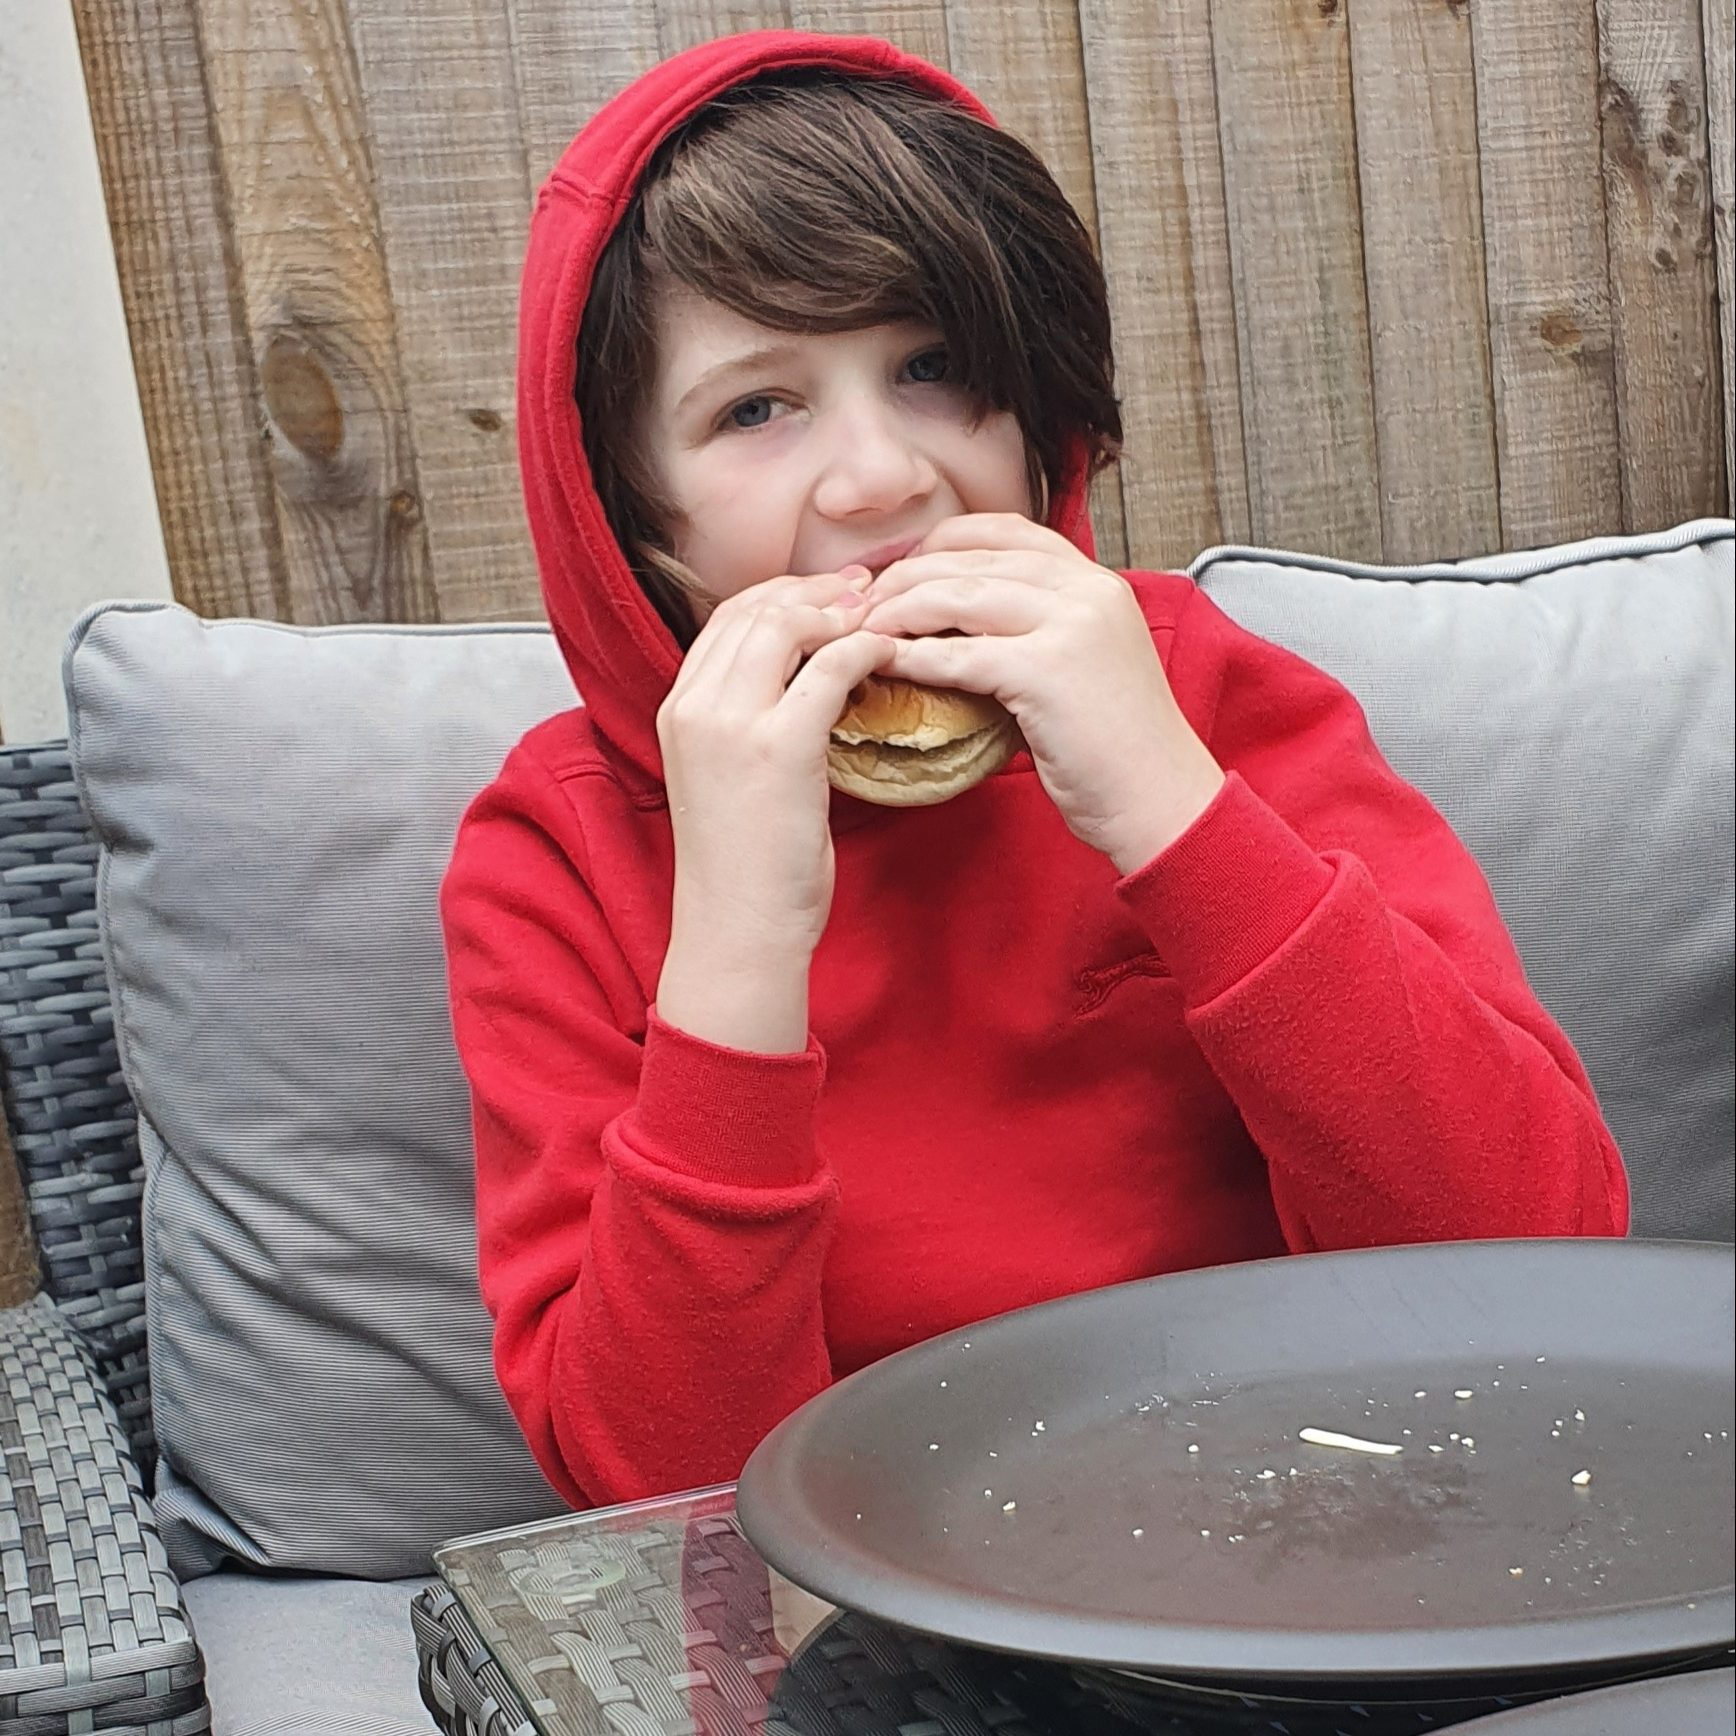 a child in a red hoody eating a cheeseburger